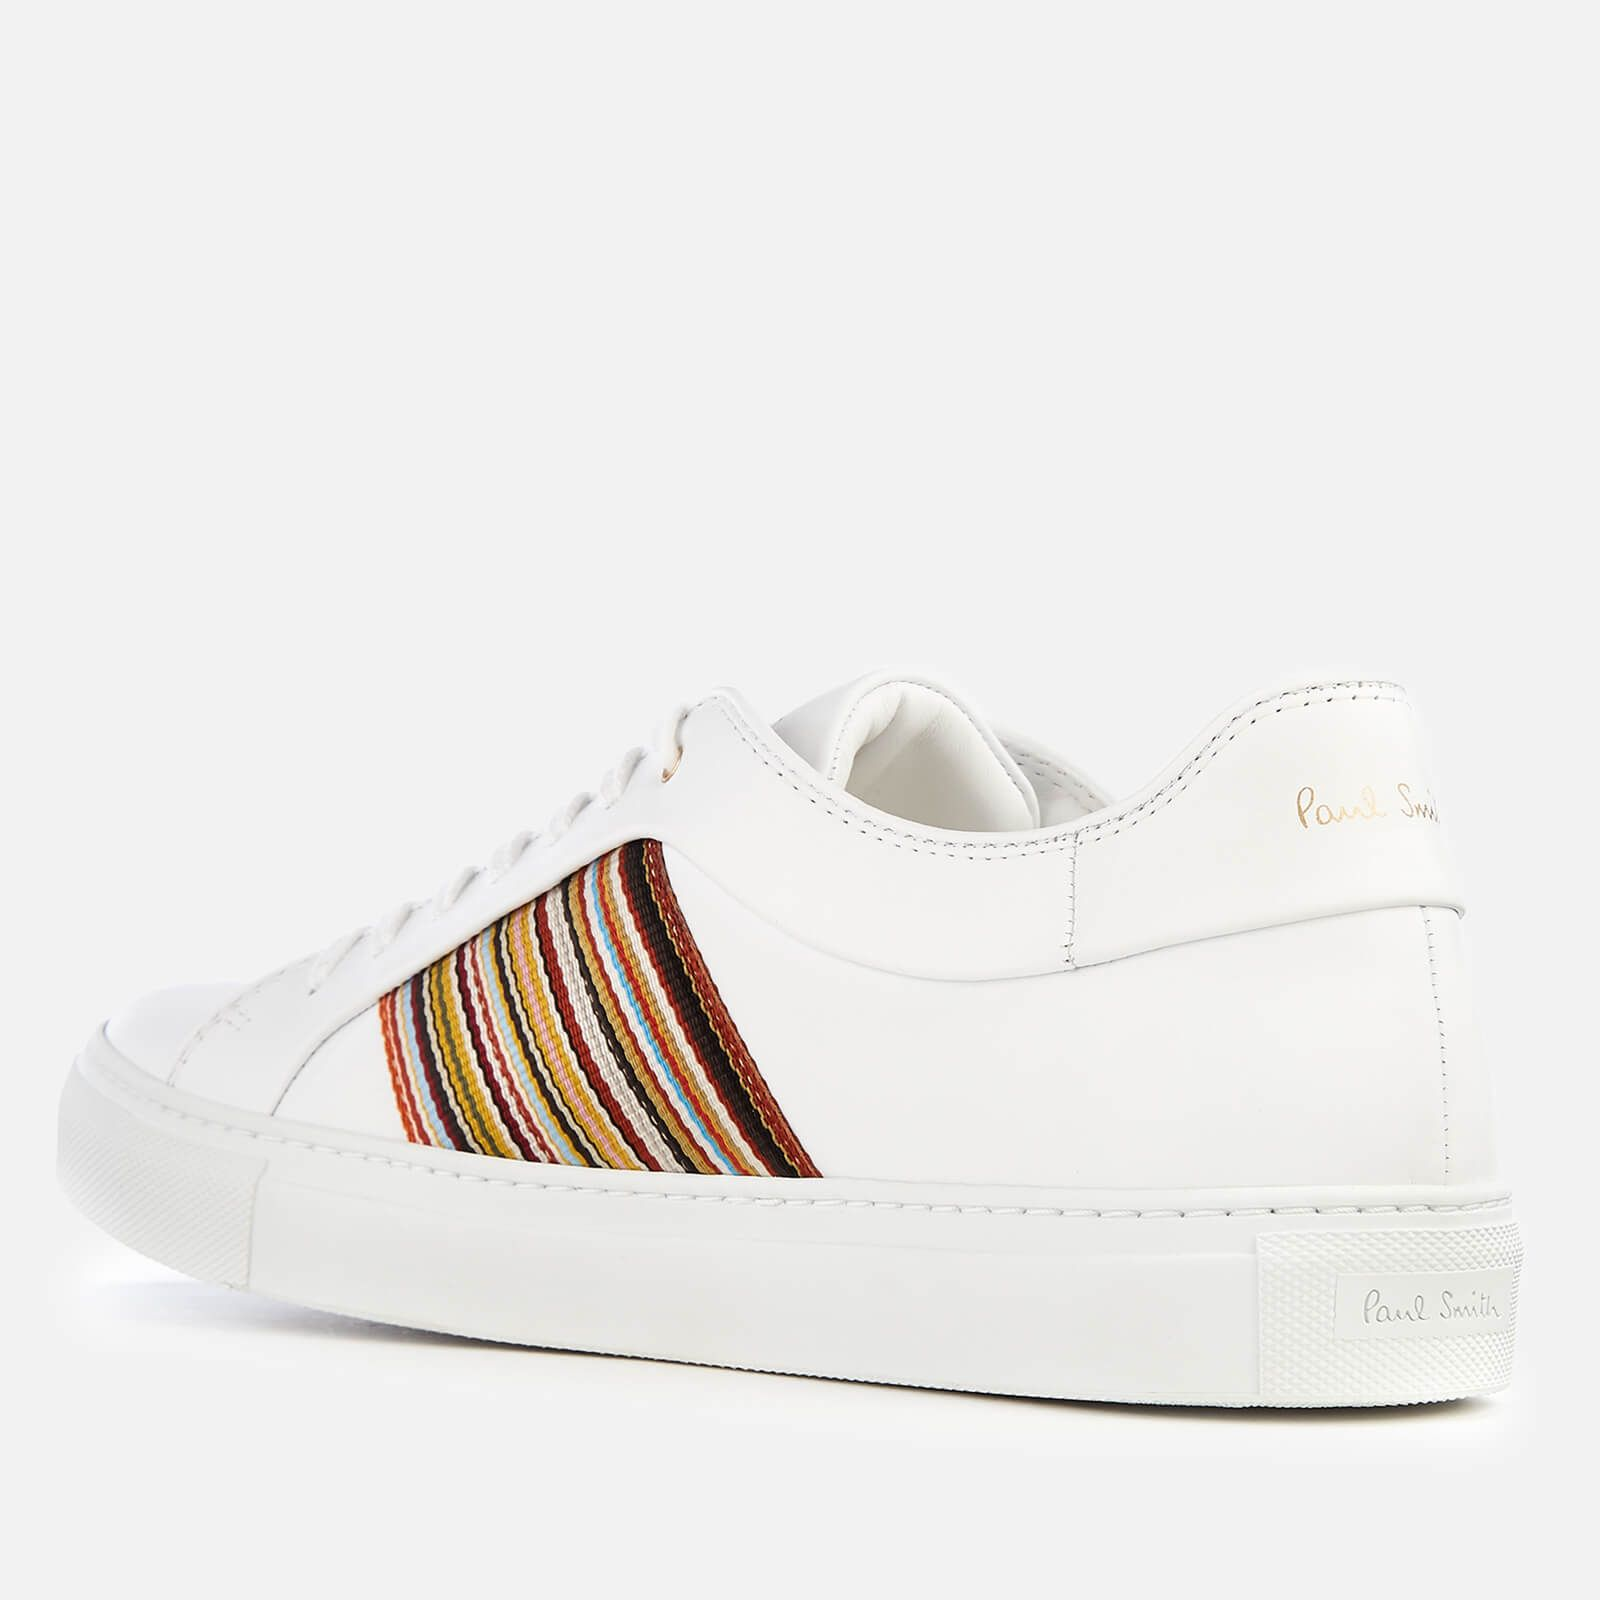 Leather, Paul smith mens, Leather trainers